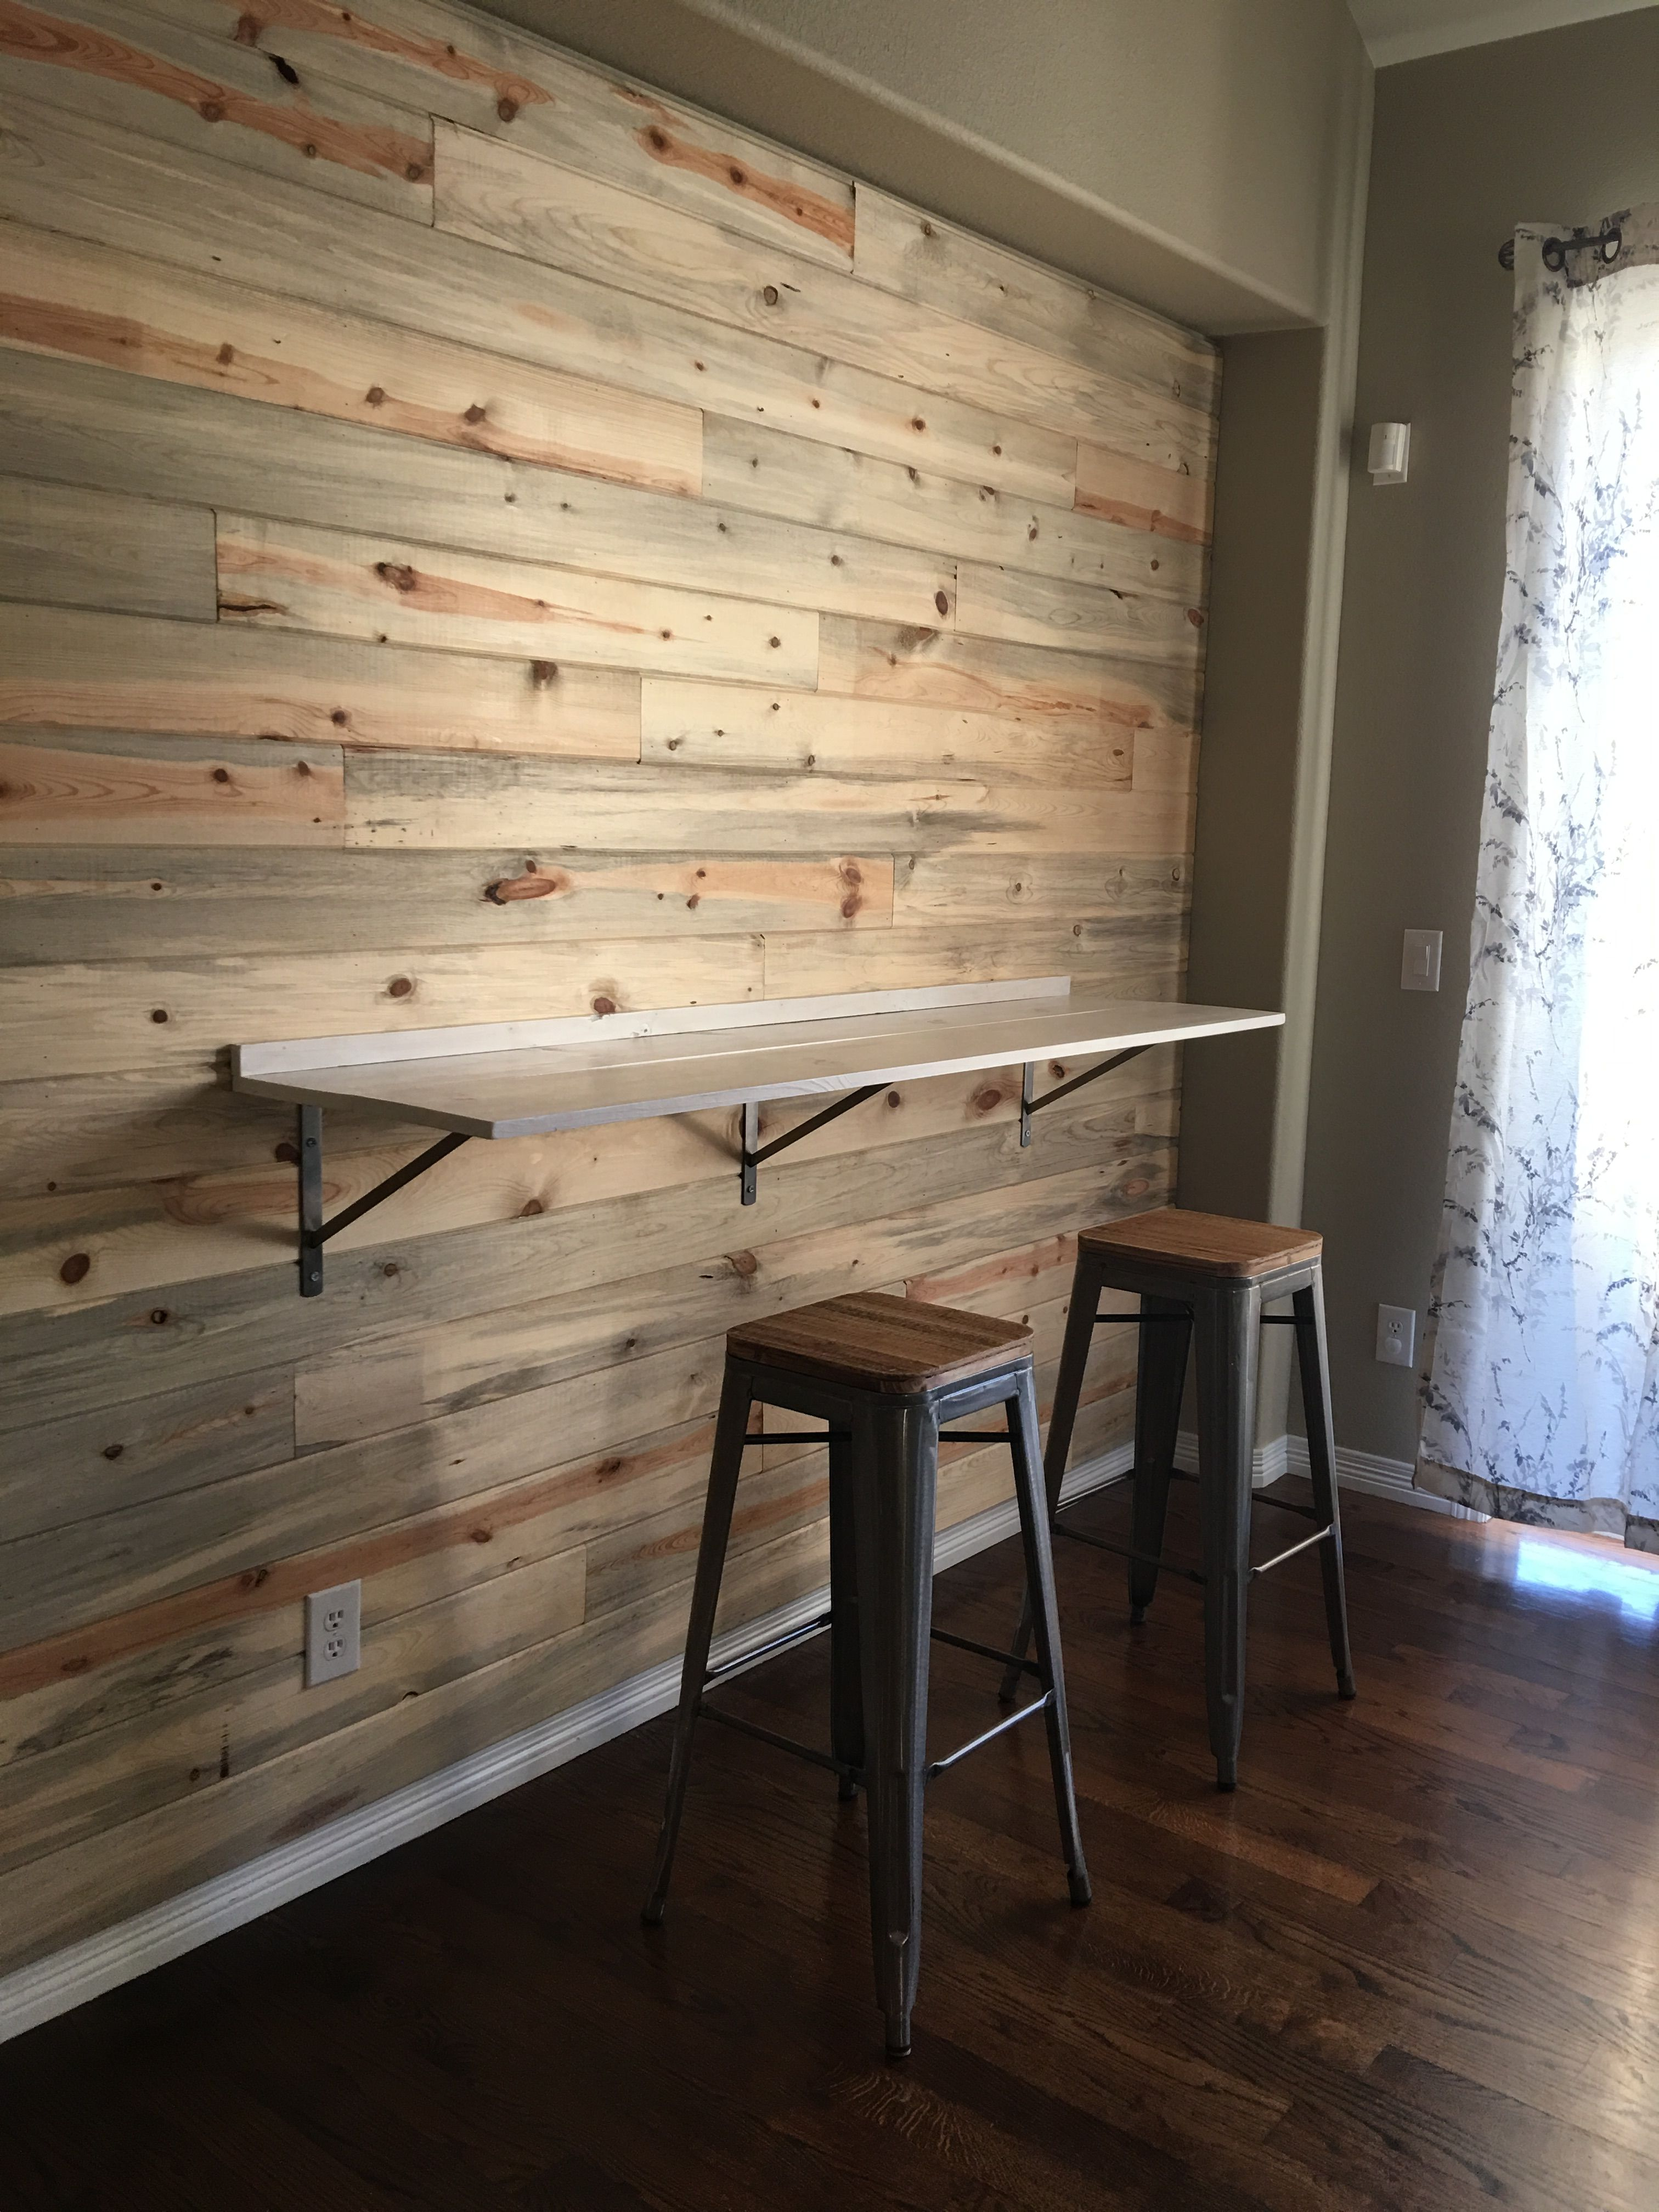 Bar Height Table Ledge For Kitchen Nook Area Mounted To Wood Wall